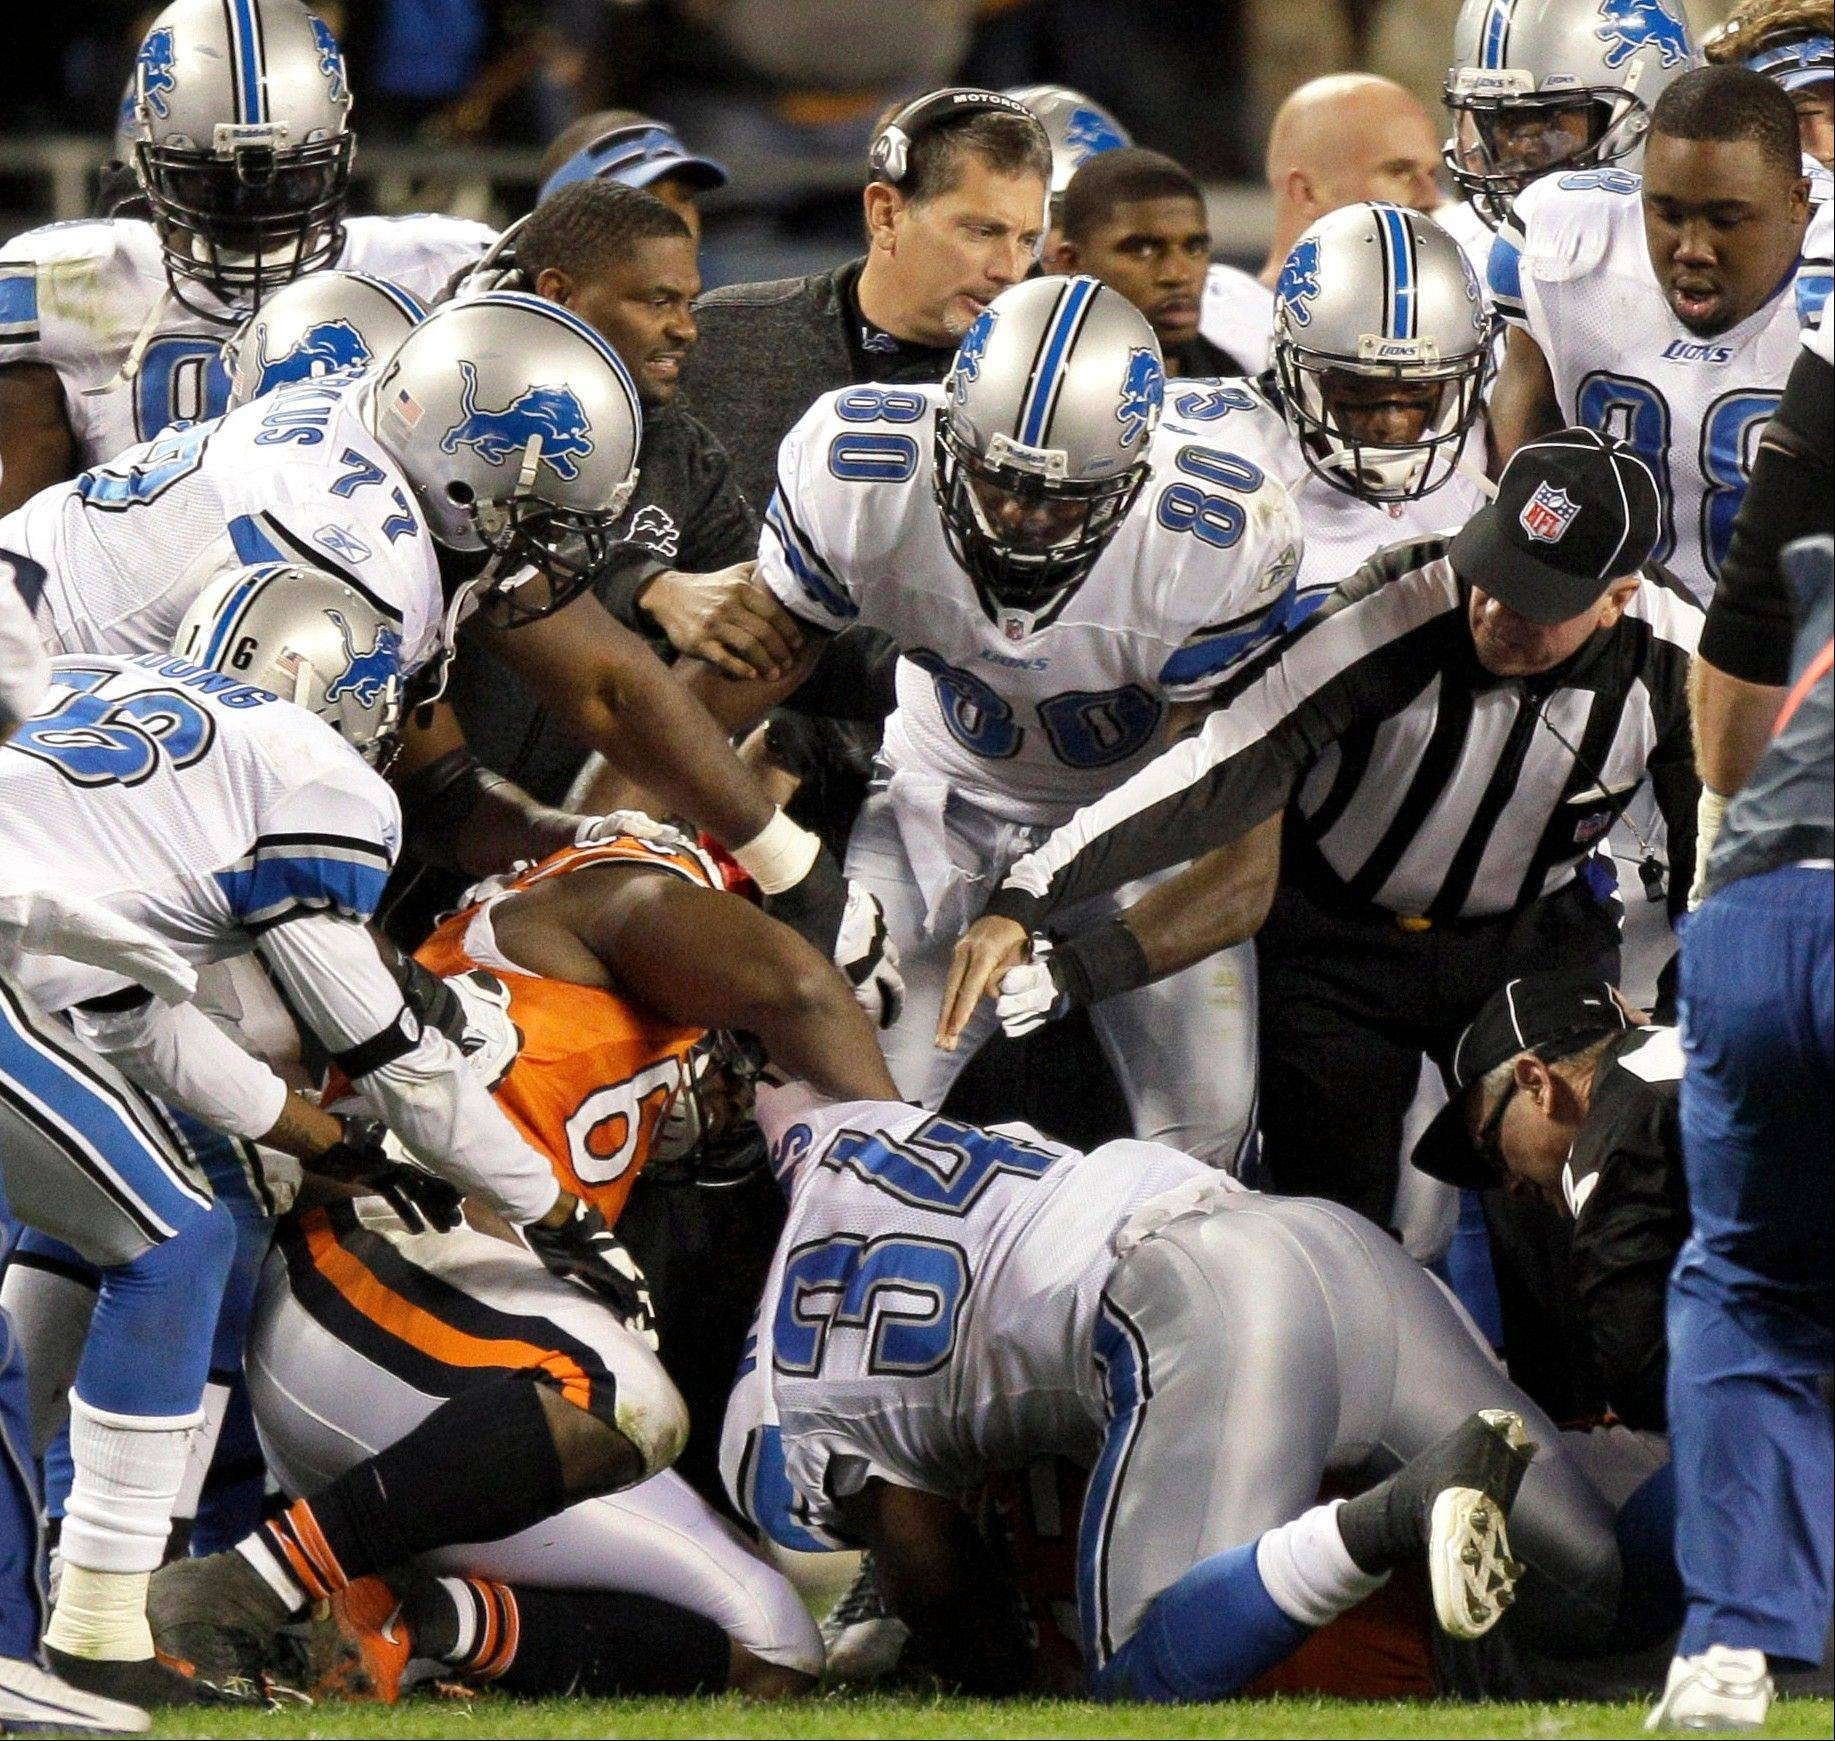 Officials break up a fight between Chicago Bears and Detroit Lions players in the second half of an NFL football game, Sunday, Nov. 13, 2011, in Chicago.